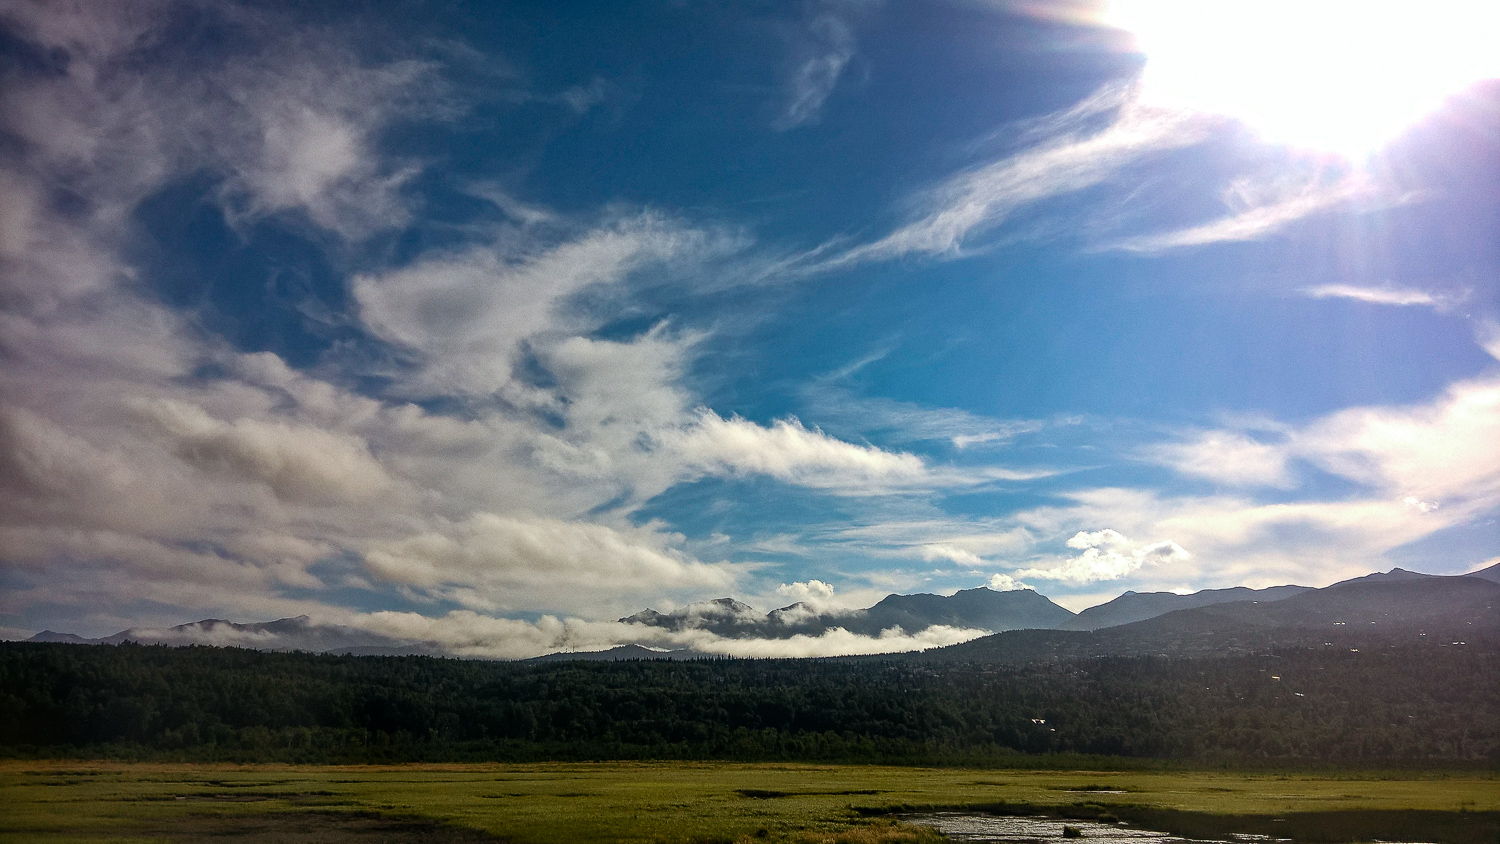 The second day, we headed out to take the Alaskan railroad. I took this through the window of our transport bus. Everything in Alaska is just stupid beautiful.(Shot with the Nokia Lumia 640 XL)